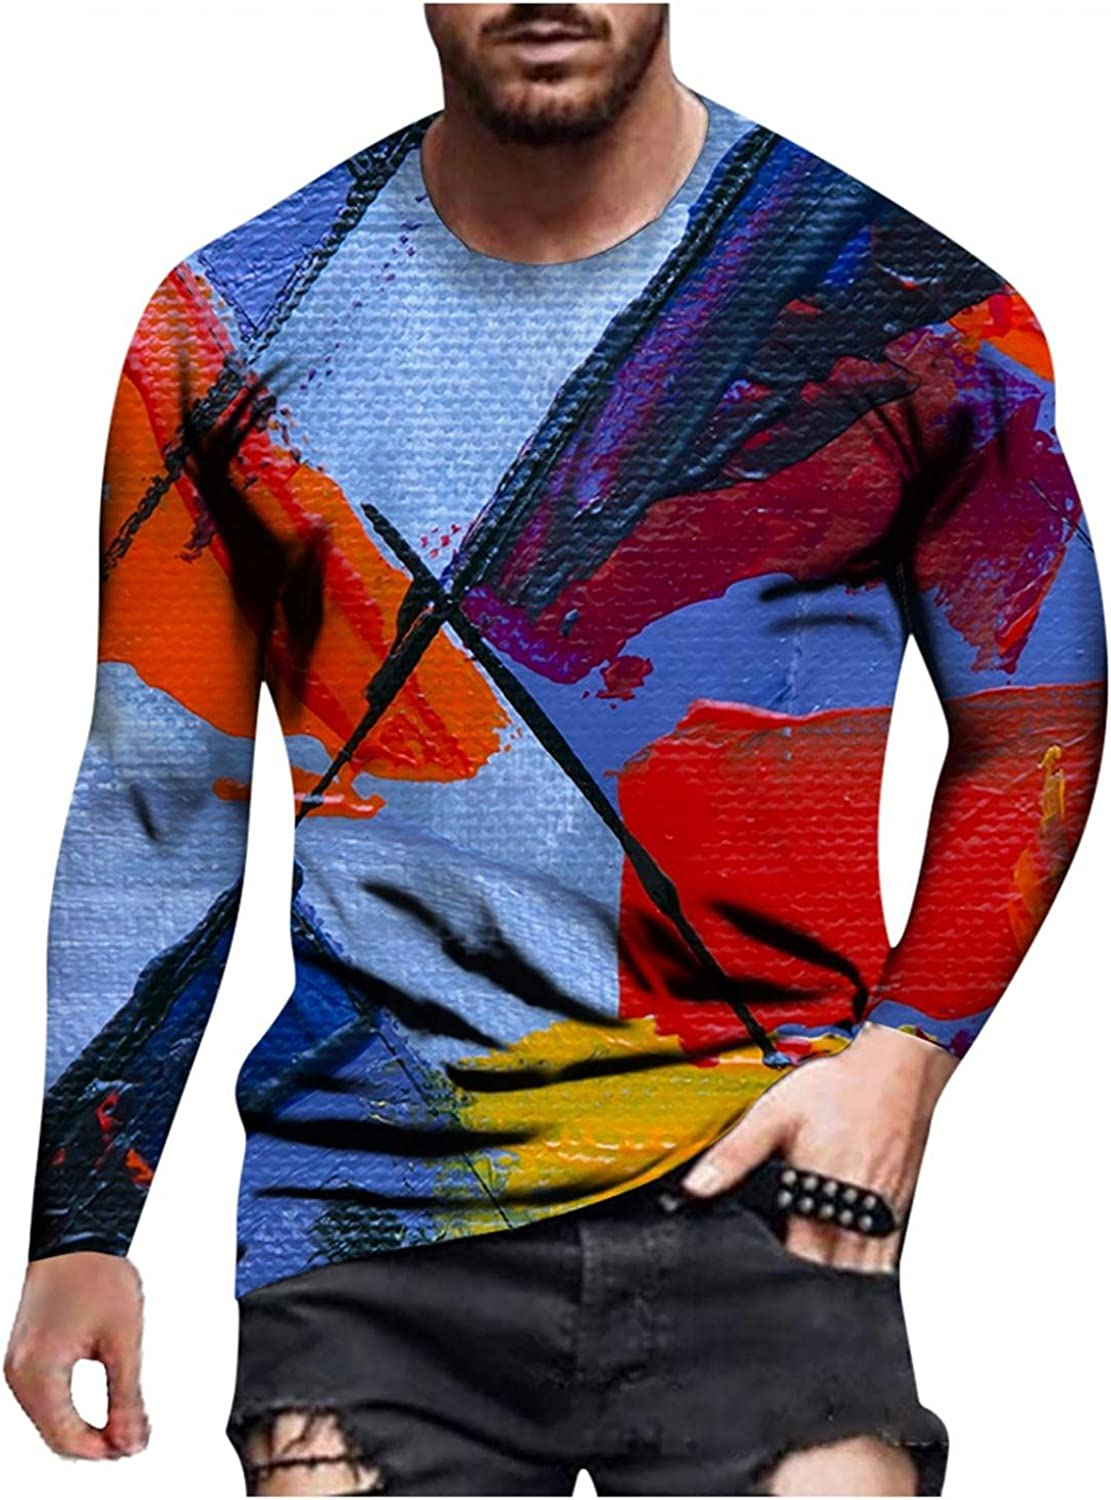 Aayomet T-Shirts for Men Fashion Printed Long Sleeve Crewneck Sweatshirts Casual Workout Sport Tee Shirts Blouses Tops